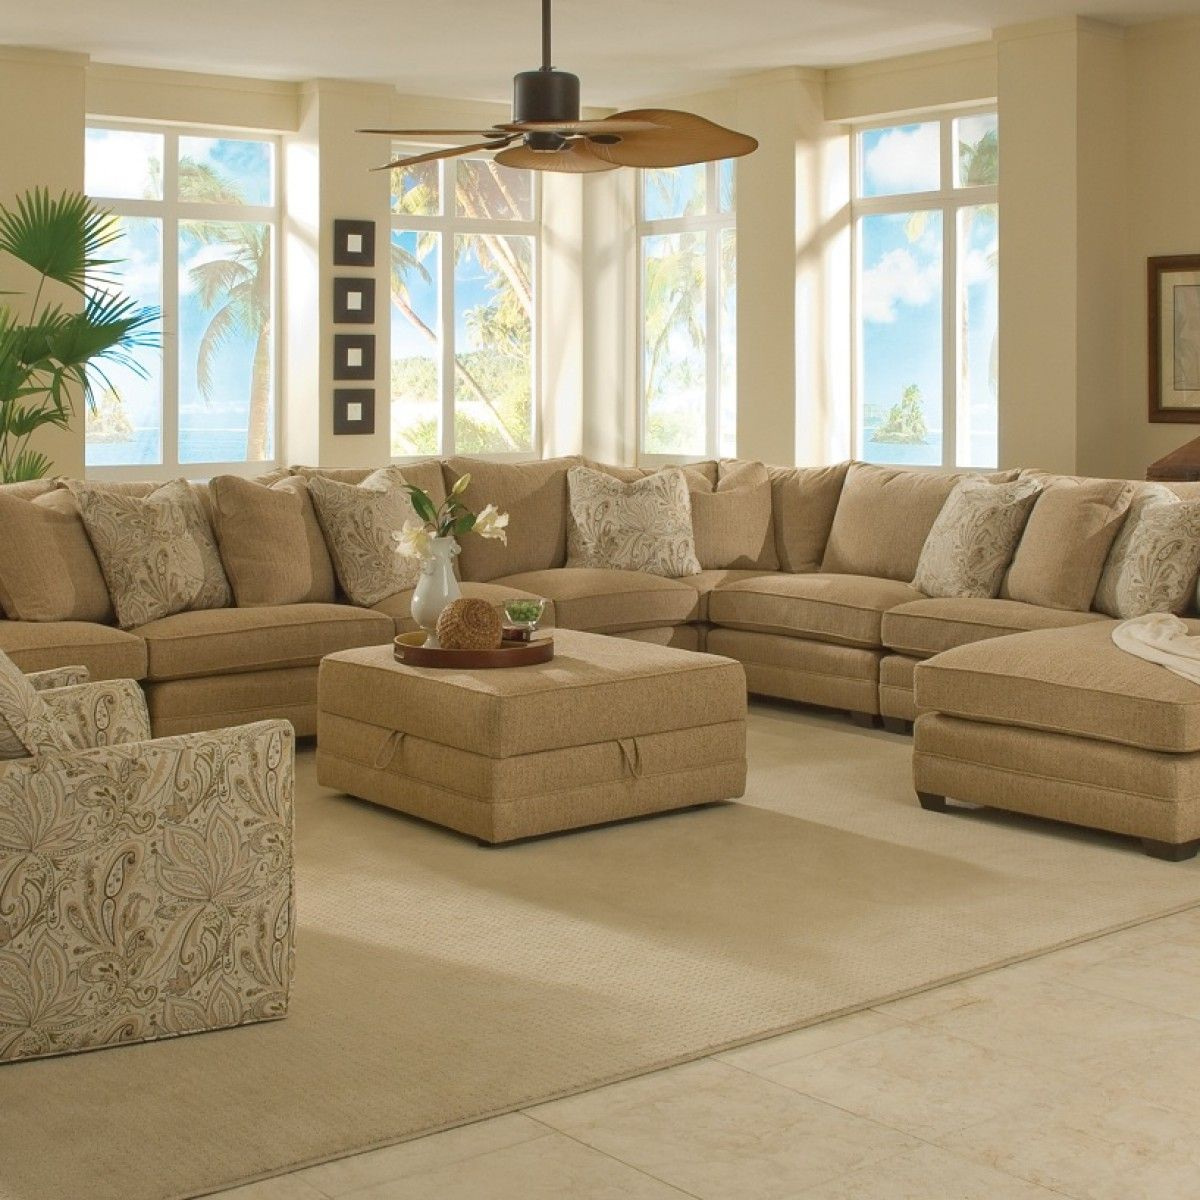 Magnificent large sectional sofas family room for Large sofa small room